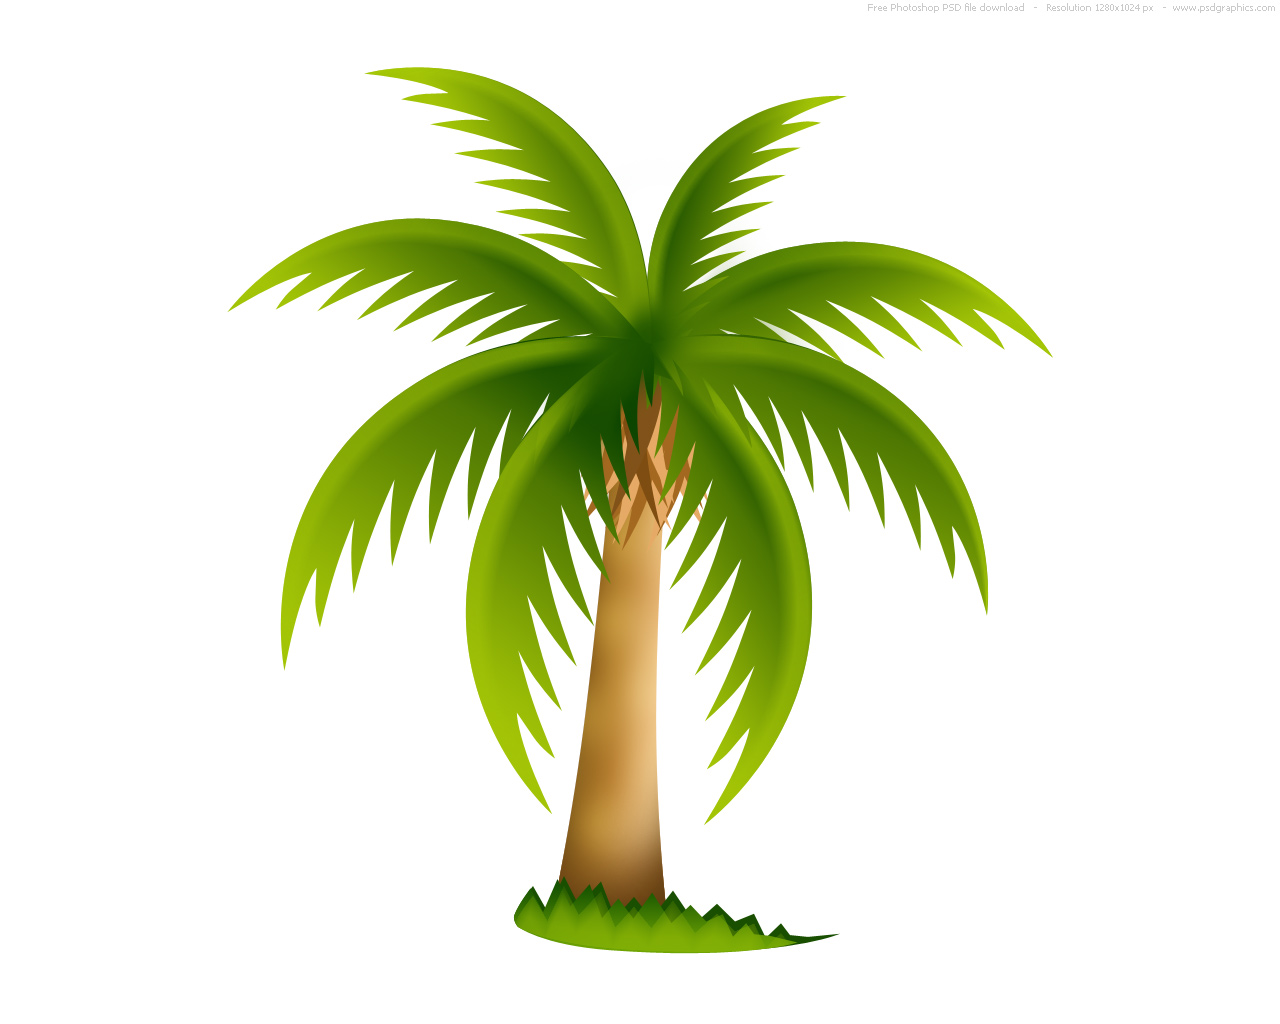 For each palm tree picture